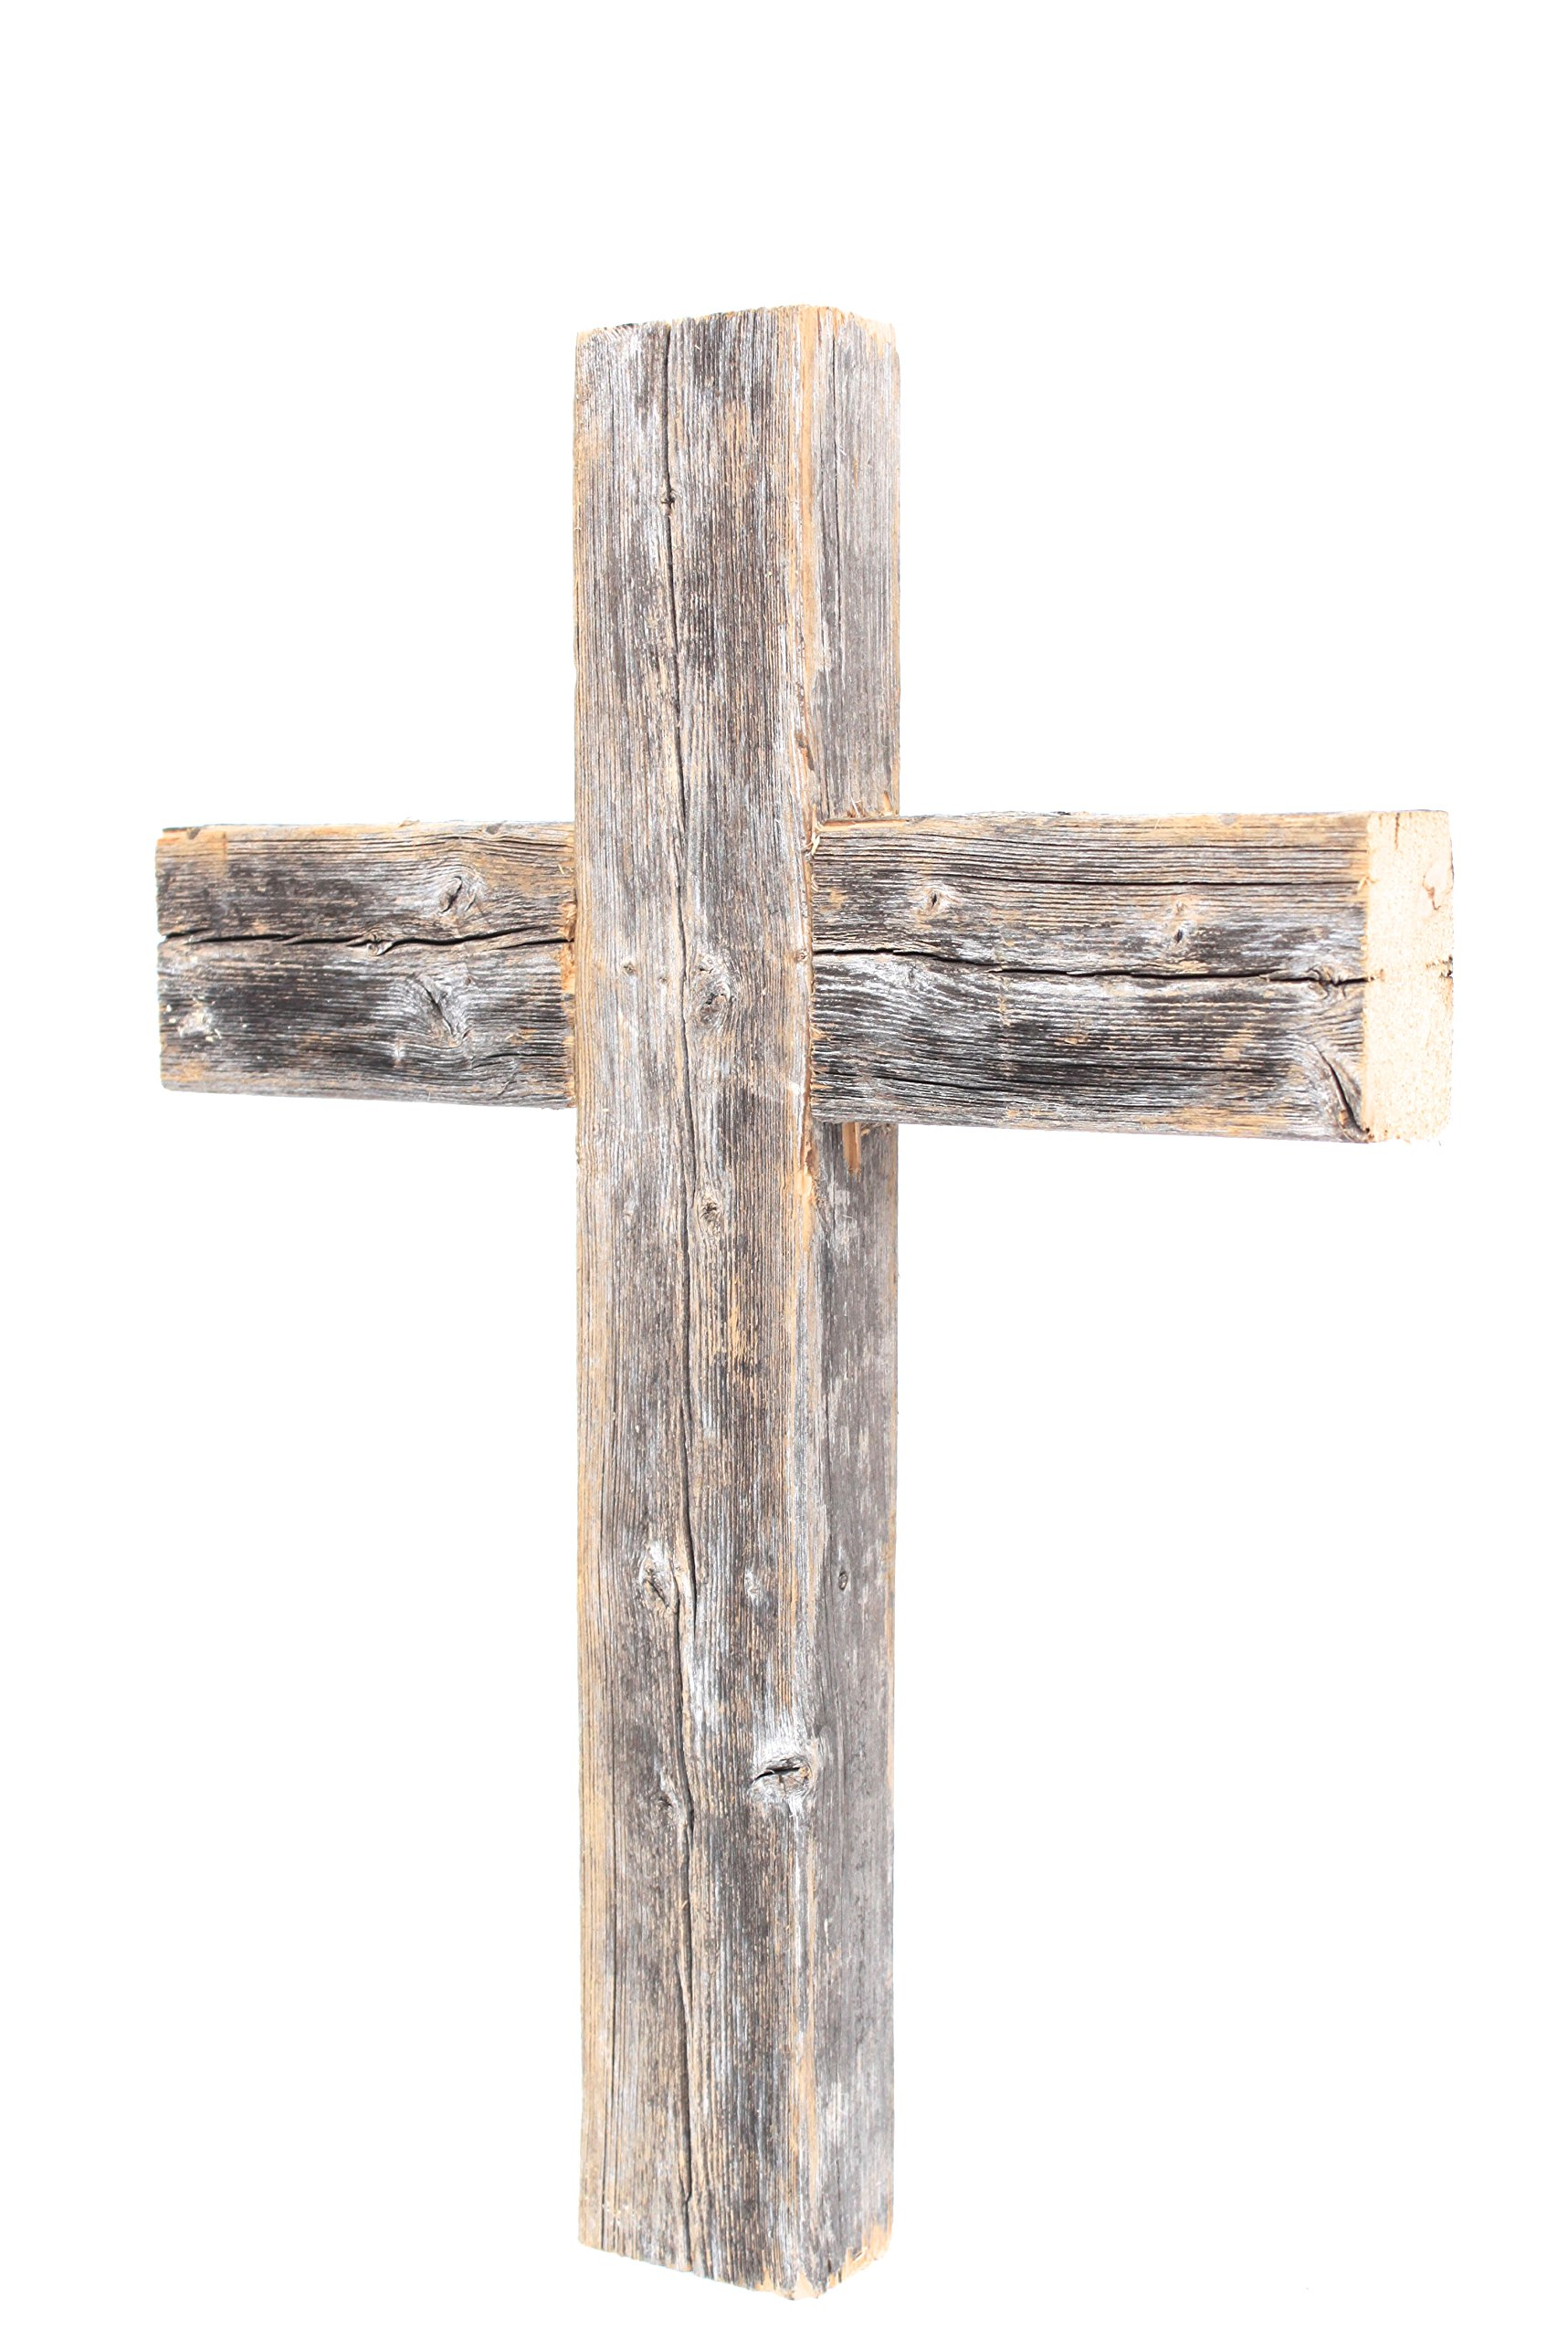 BarnwoodUSA Rustic 12 by 16 by 2 Inch Old Wooden Cross - 100% Reclaimed Wood, Weathered Grey